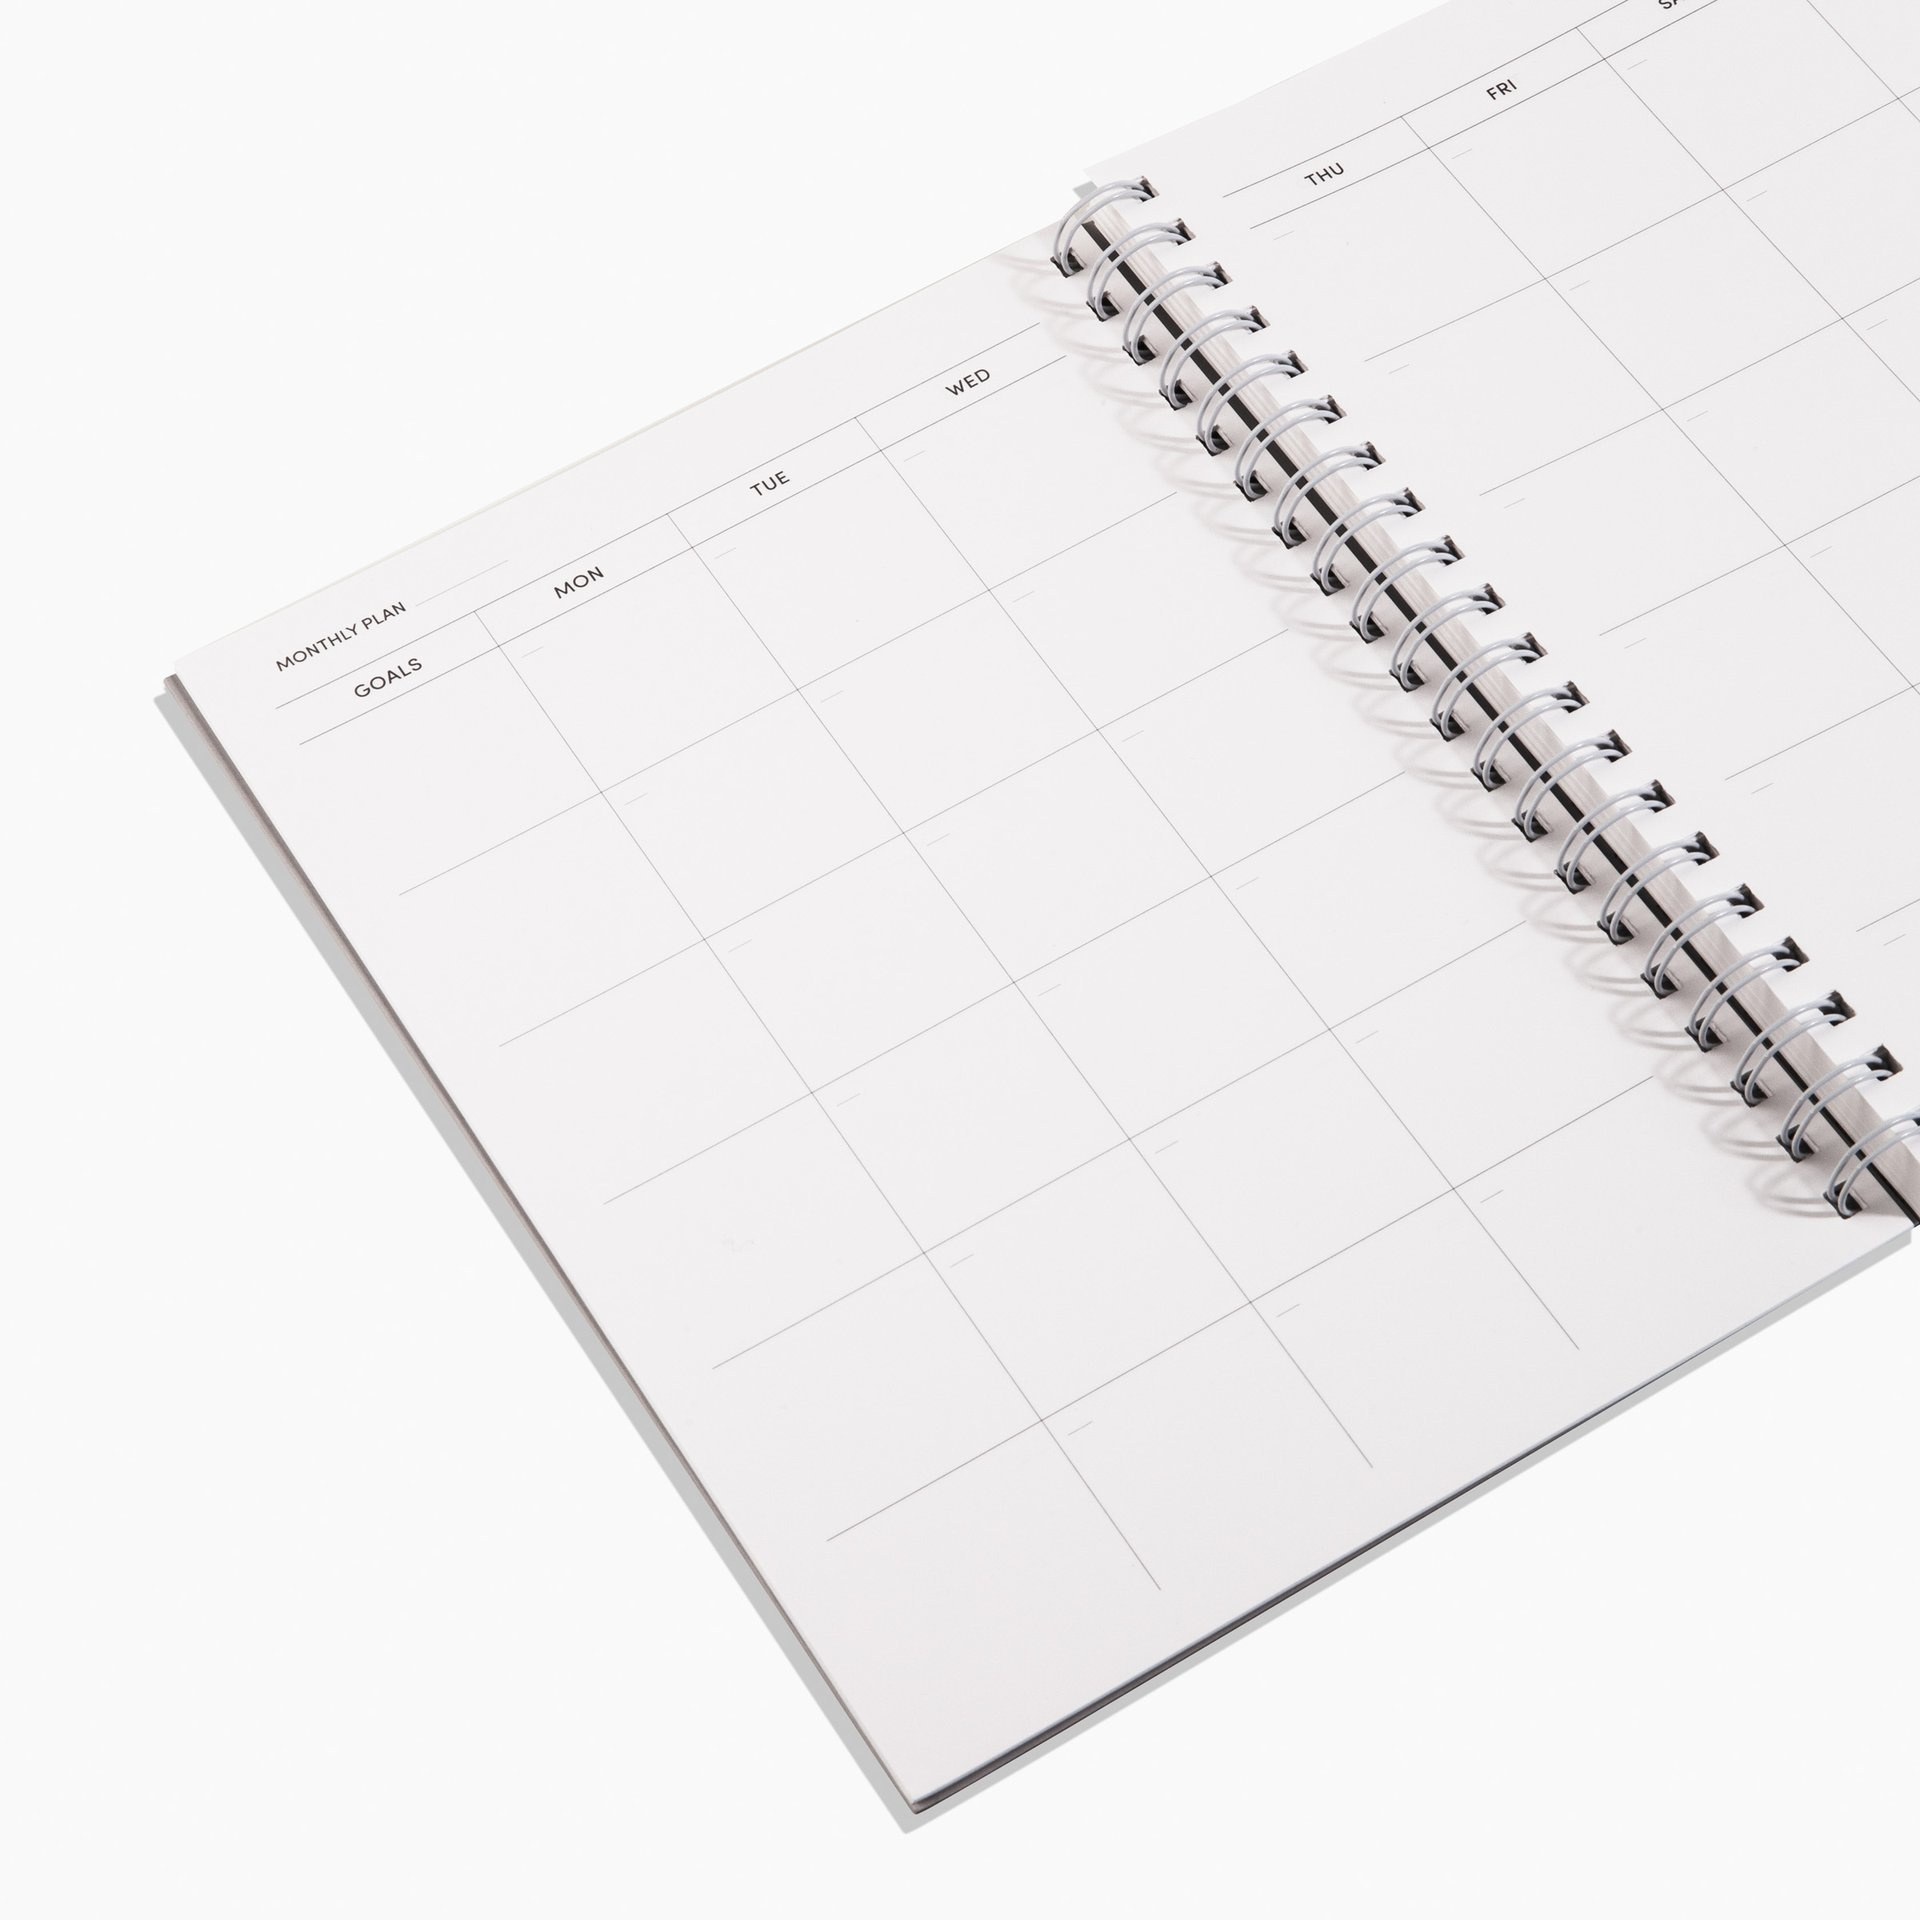 Poketo Poketo Planner with Geometric Design